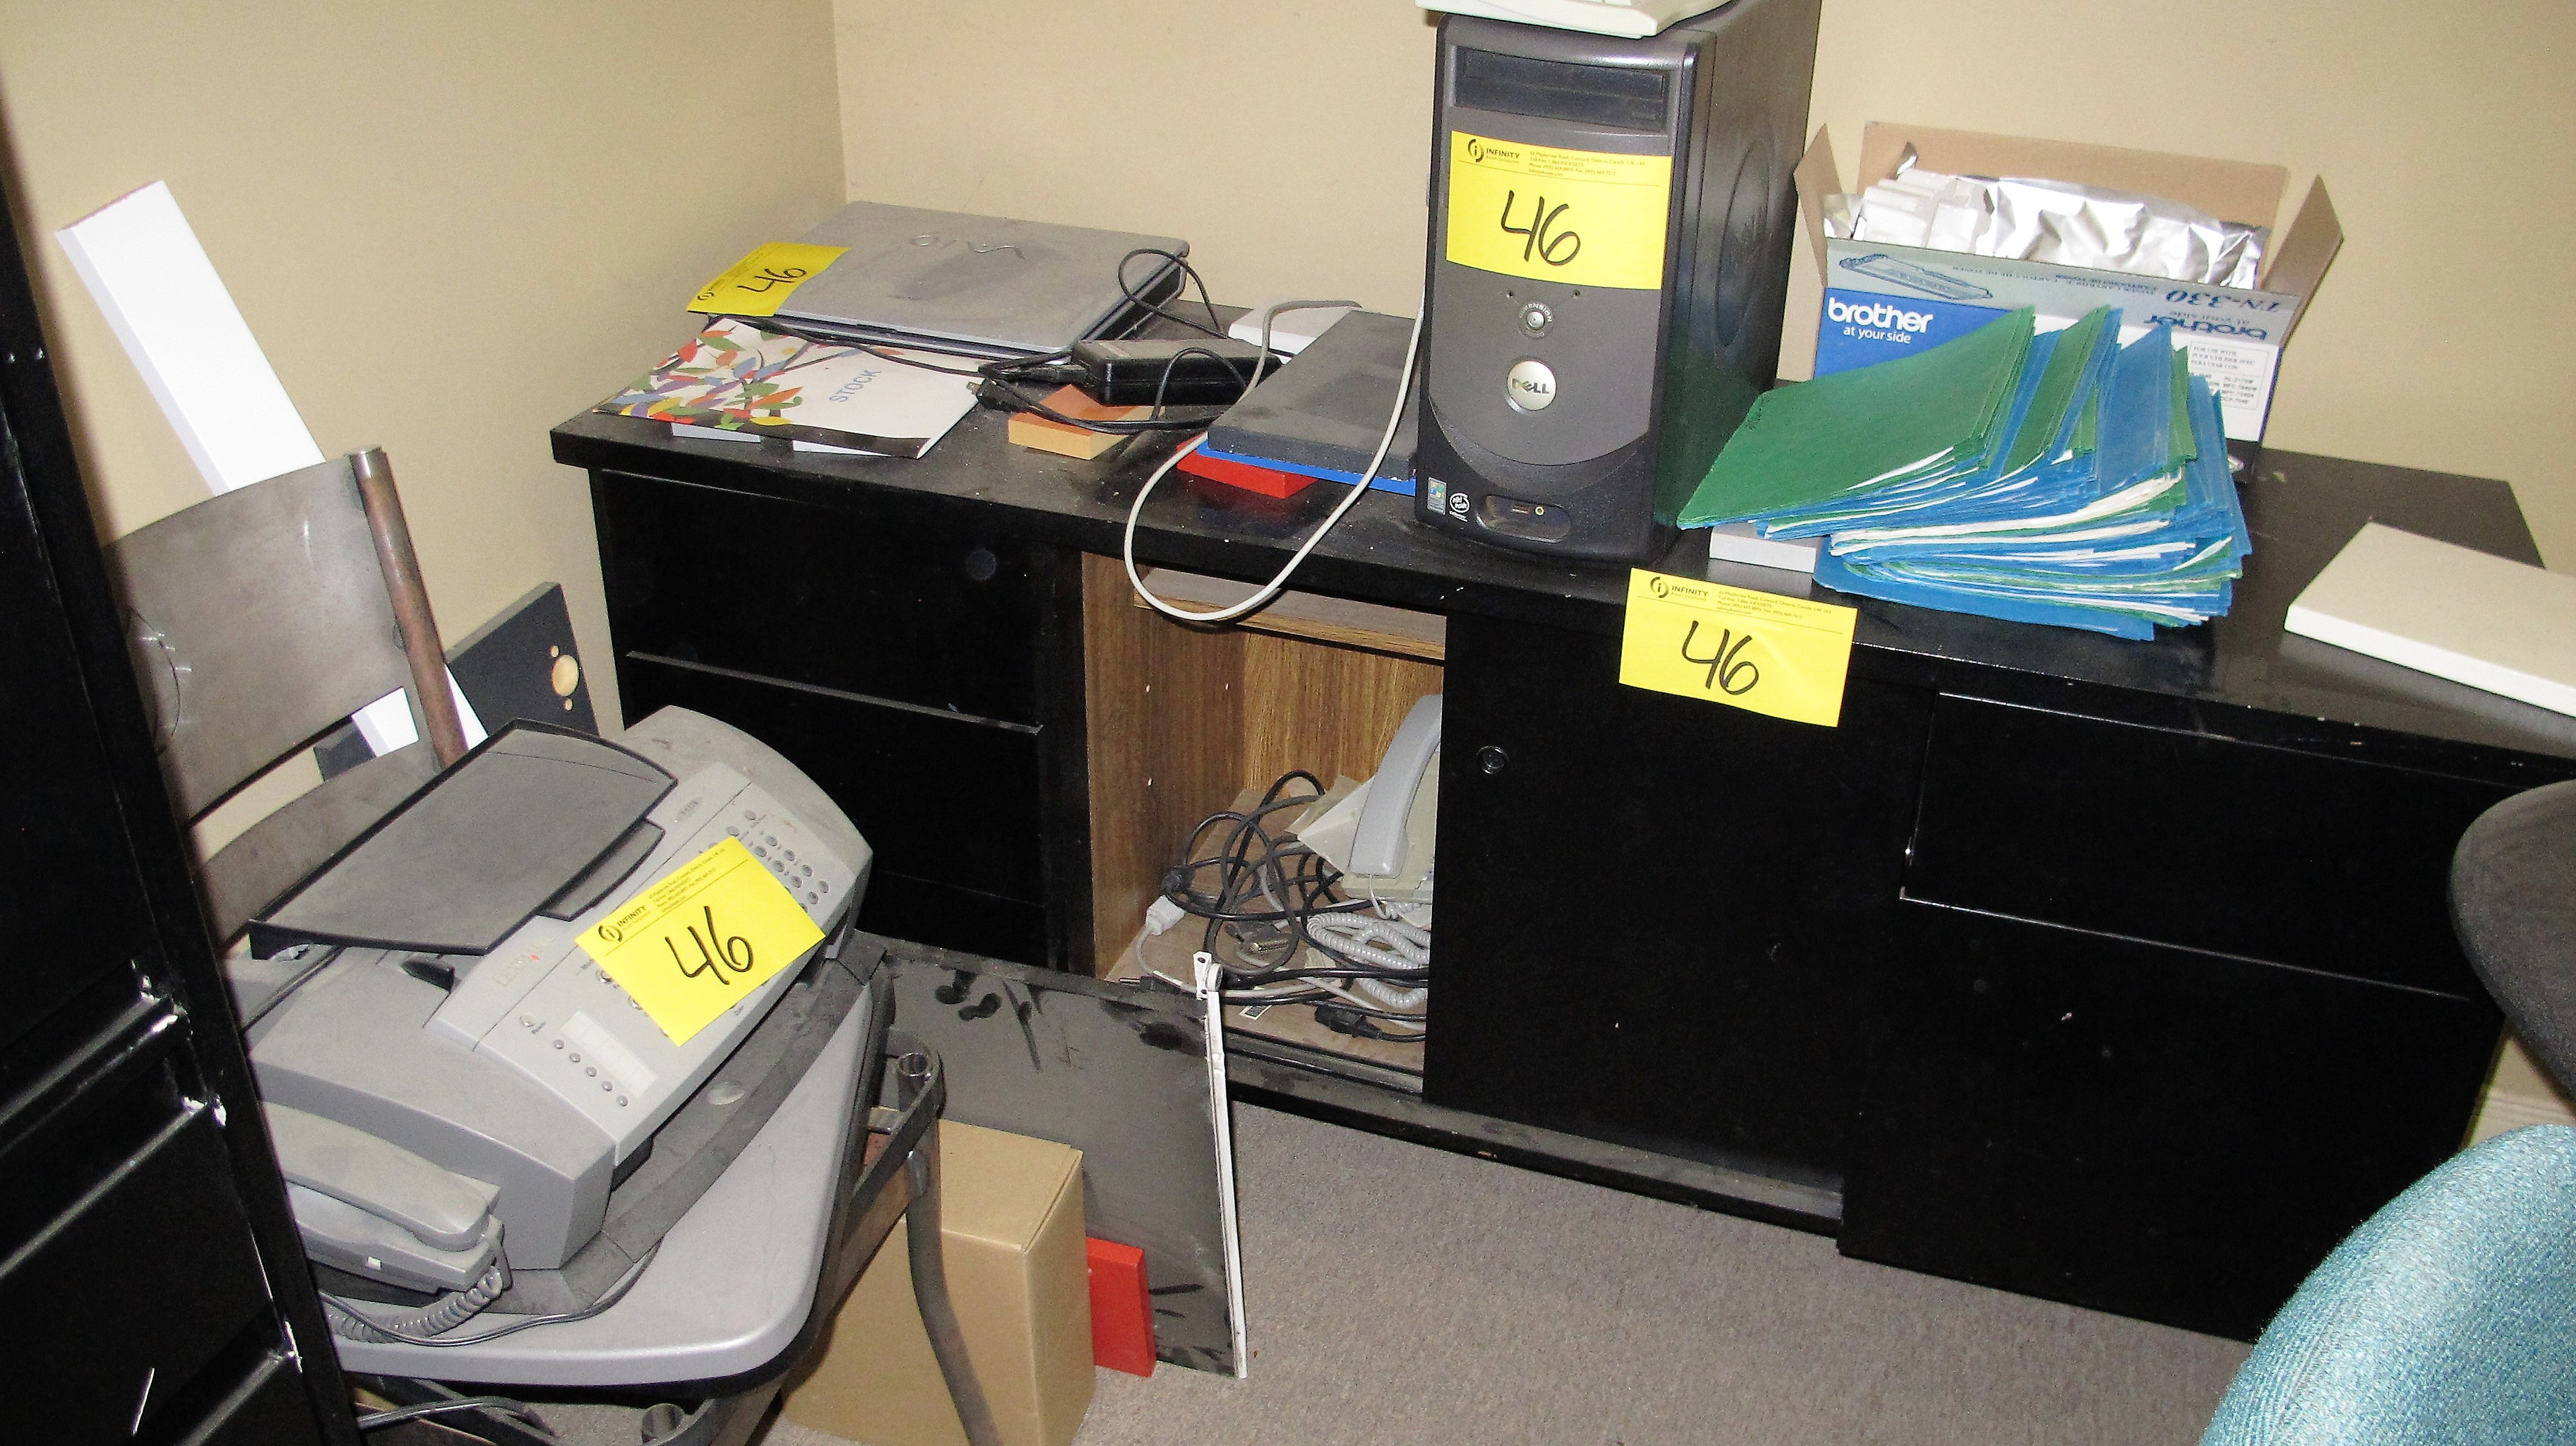 Lot 46 - LOOSE CONTENTS OF OFFICE INCLUDING DESKS, CHAIR, CABINETS, DIVIDER, COFFEE TABLE, FILE CABINET,